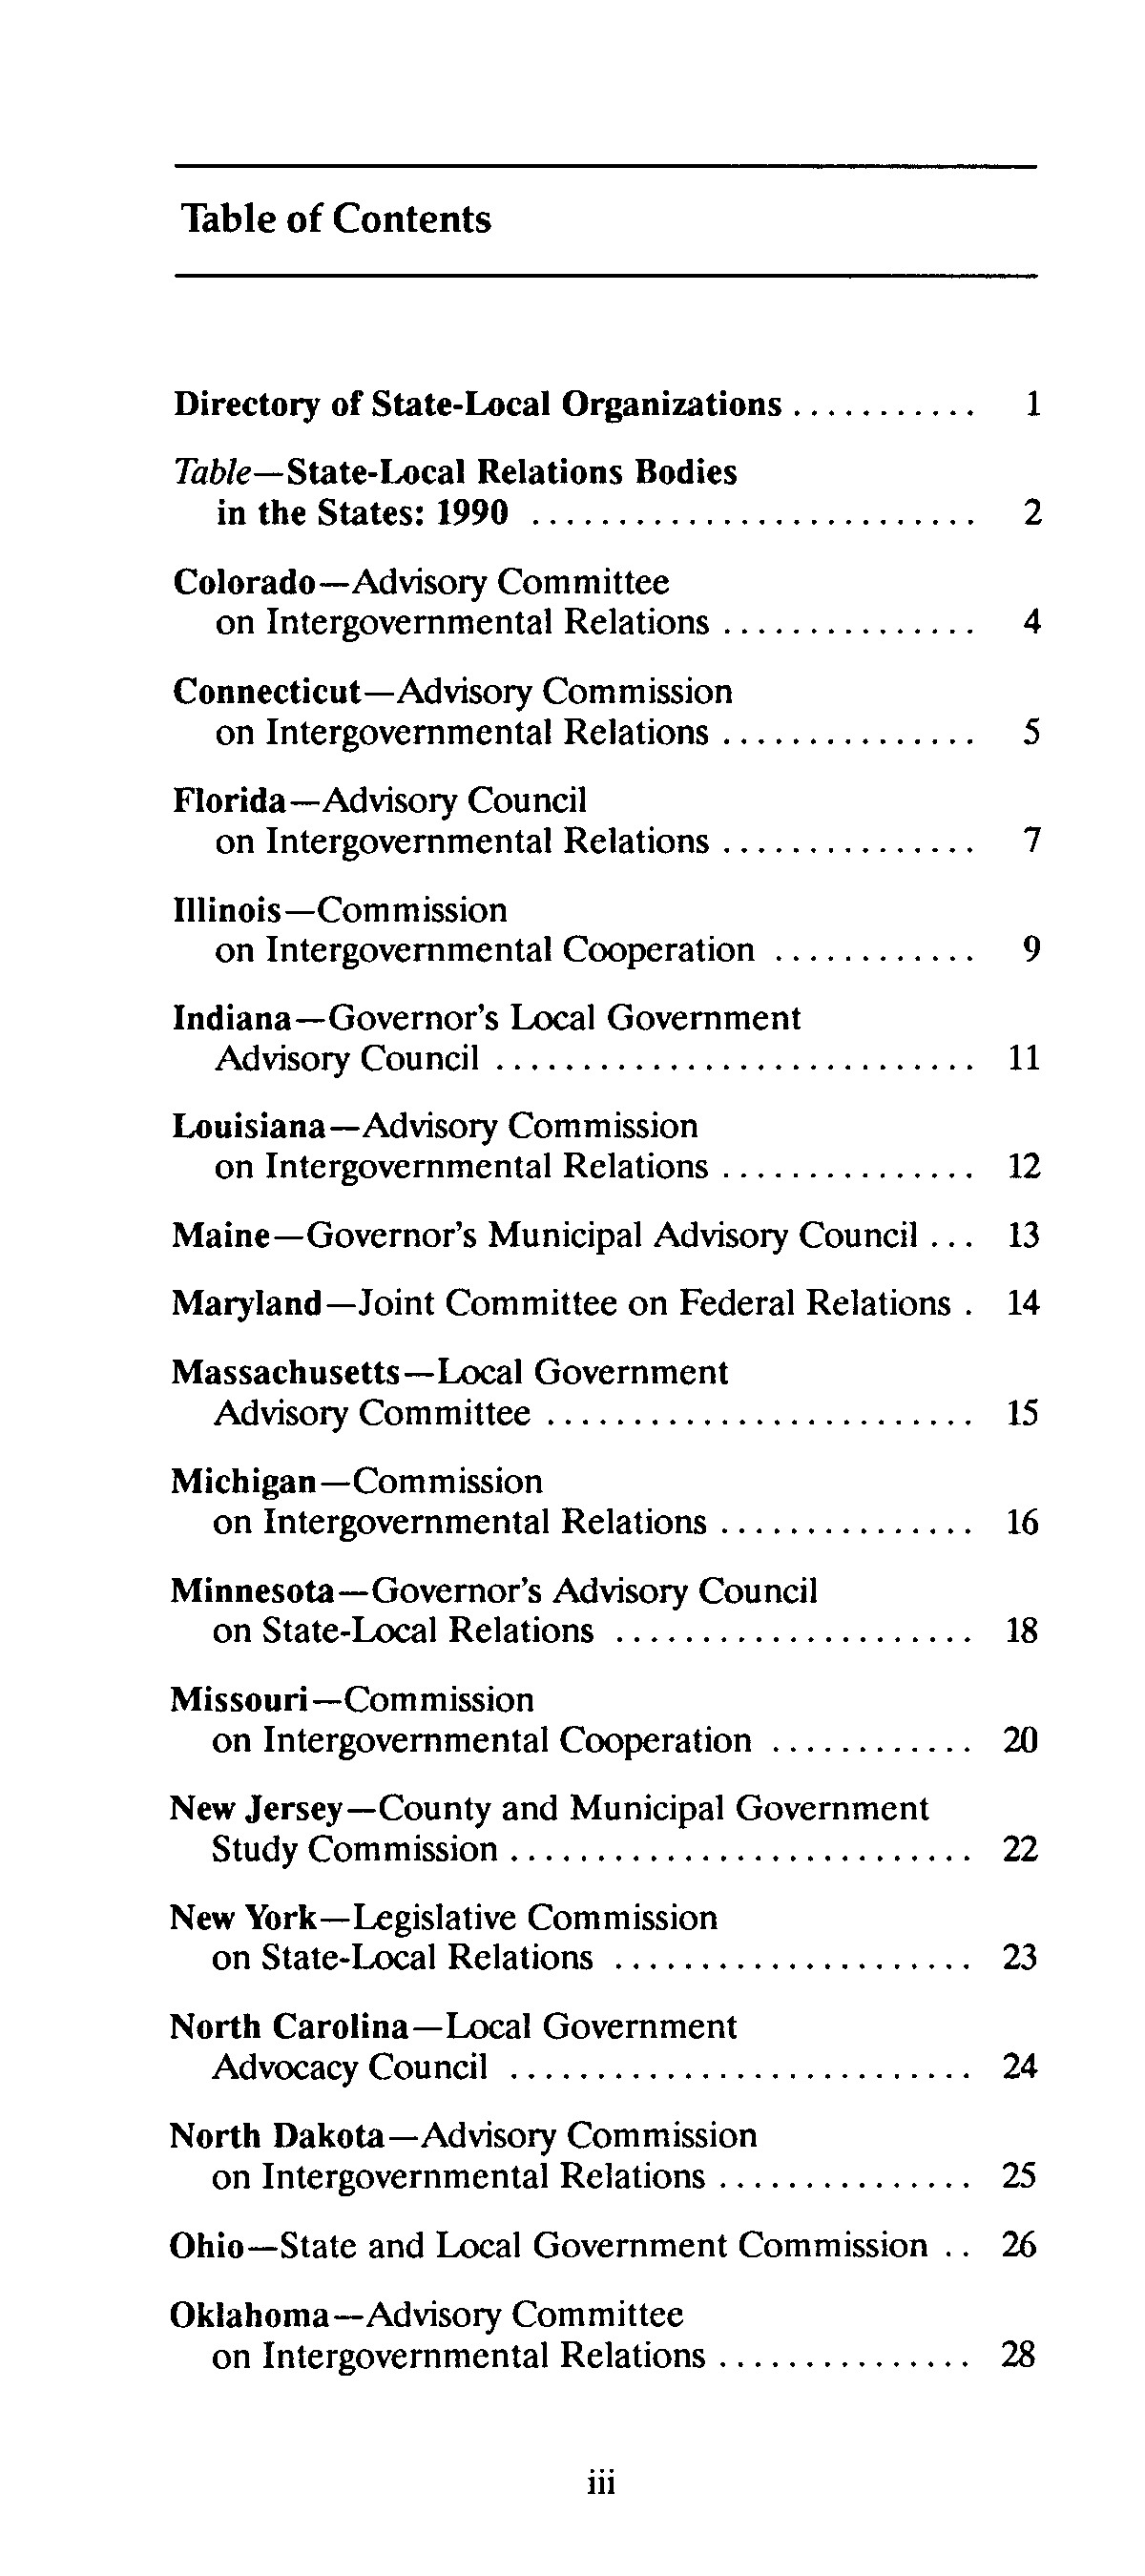 Directory of state-local relations organizations : the ACIR counterparts                                                                                                      III